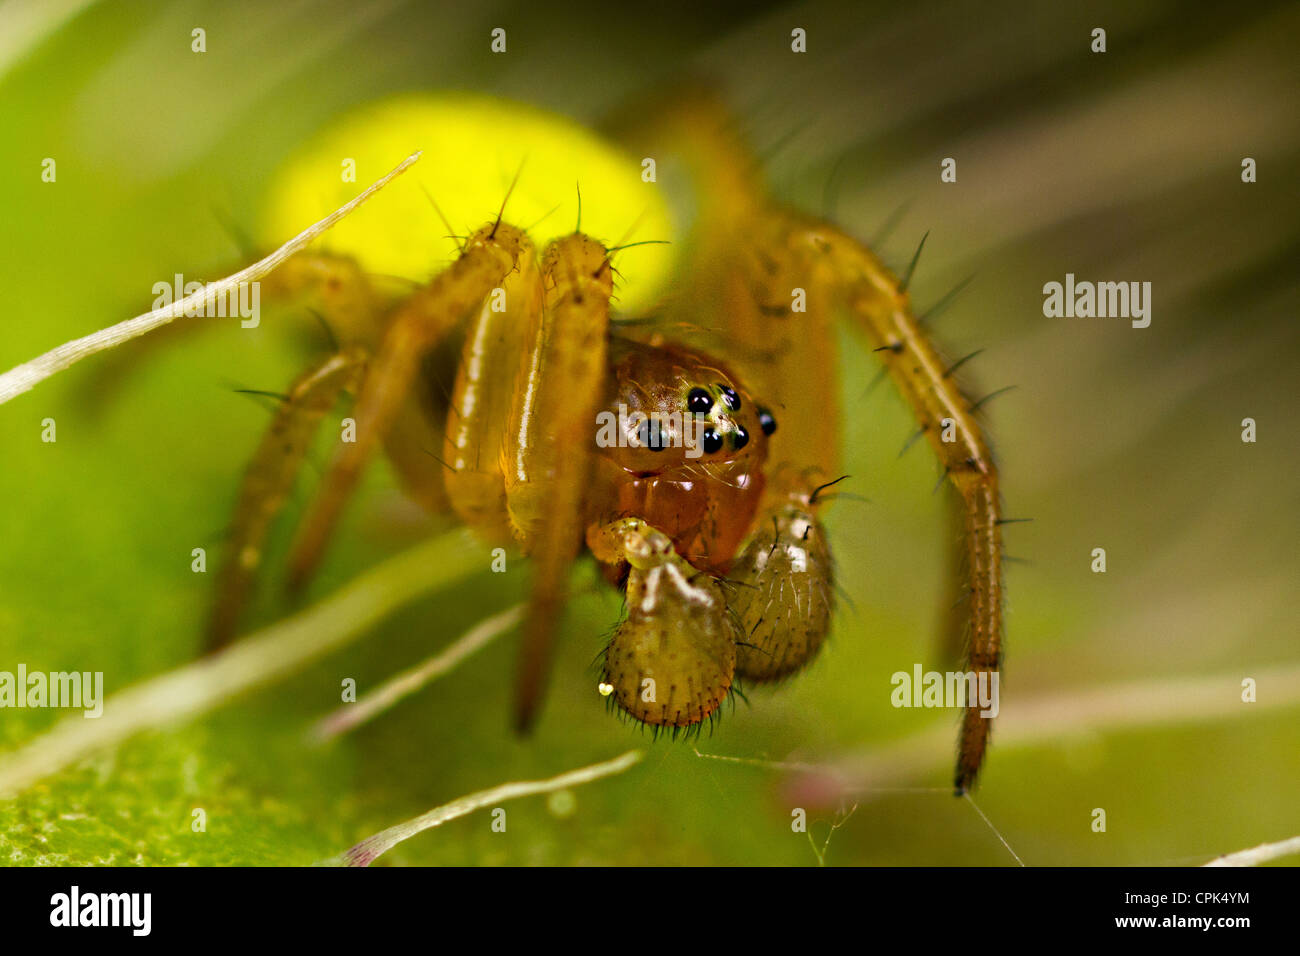 A small green spider Stock Photo